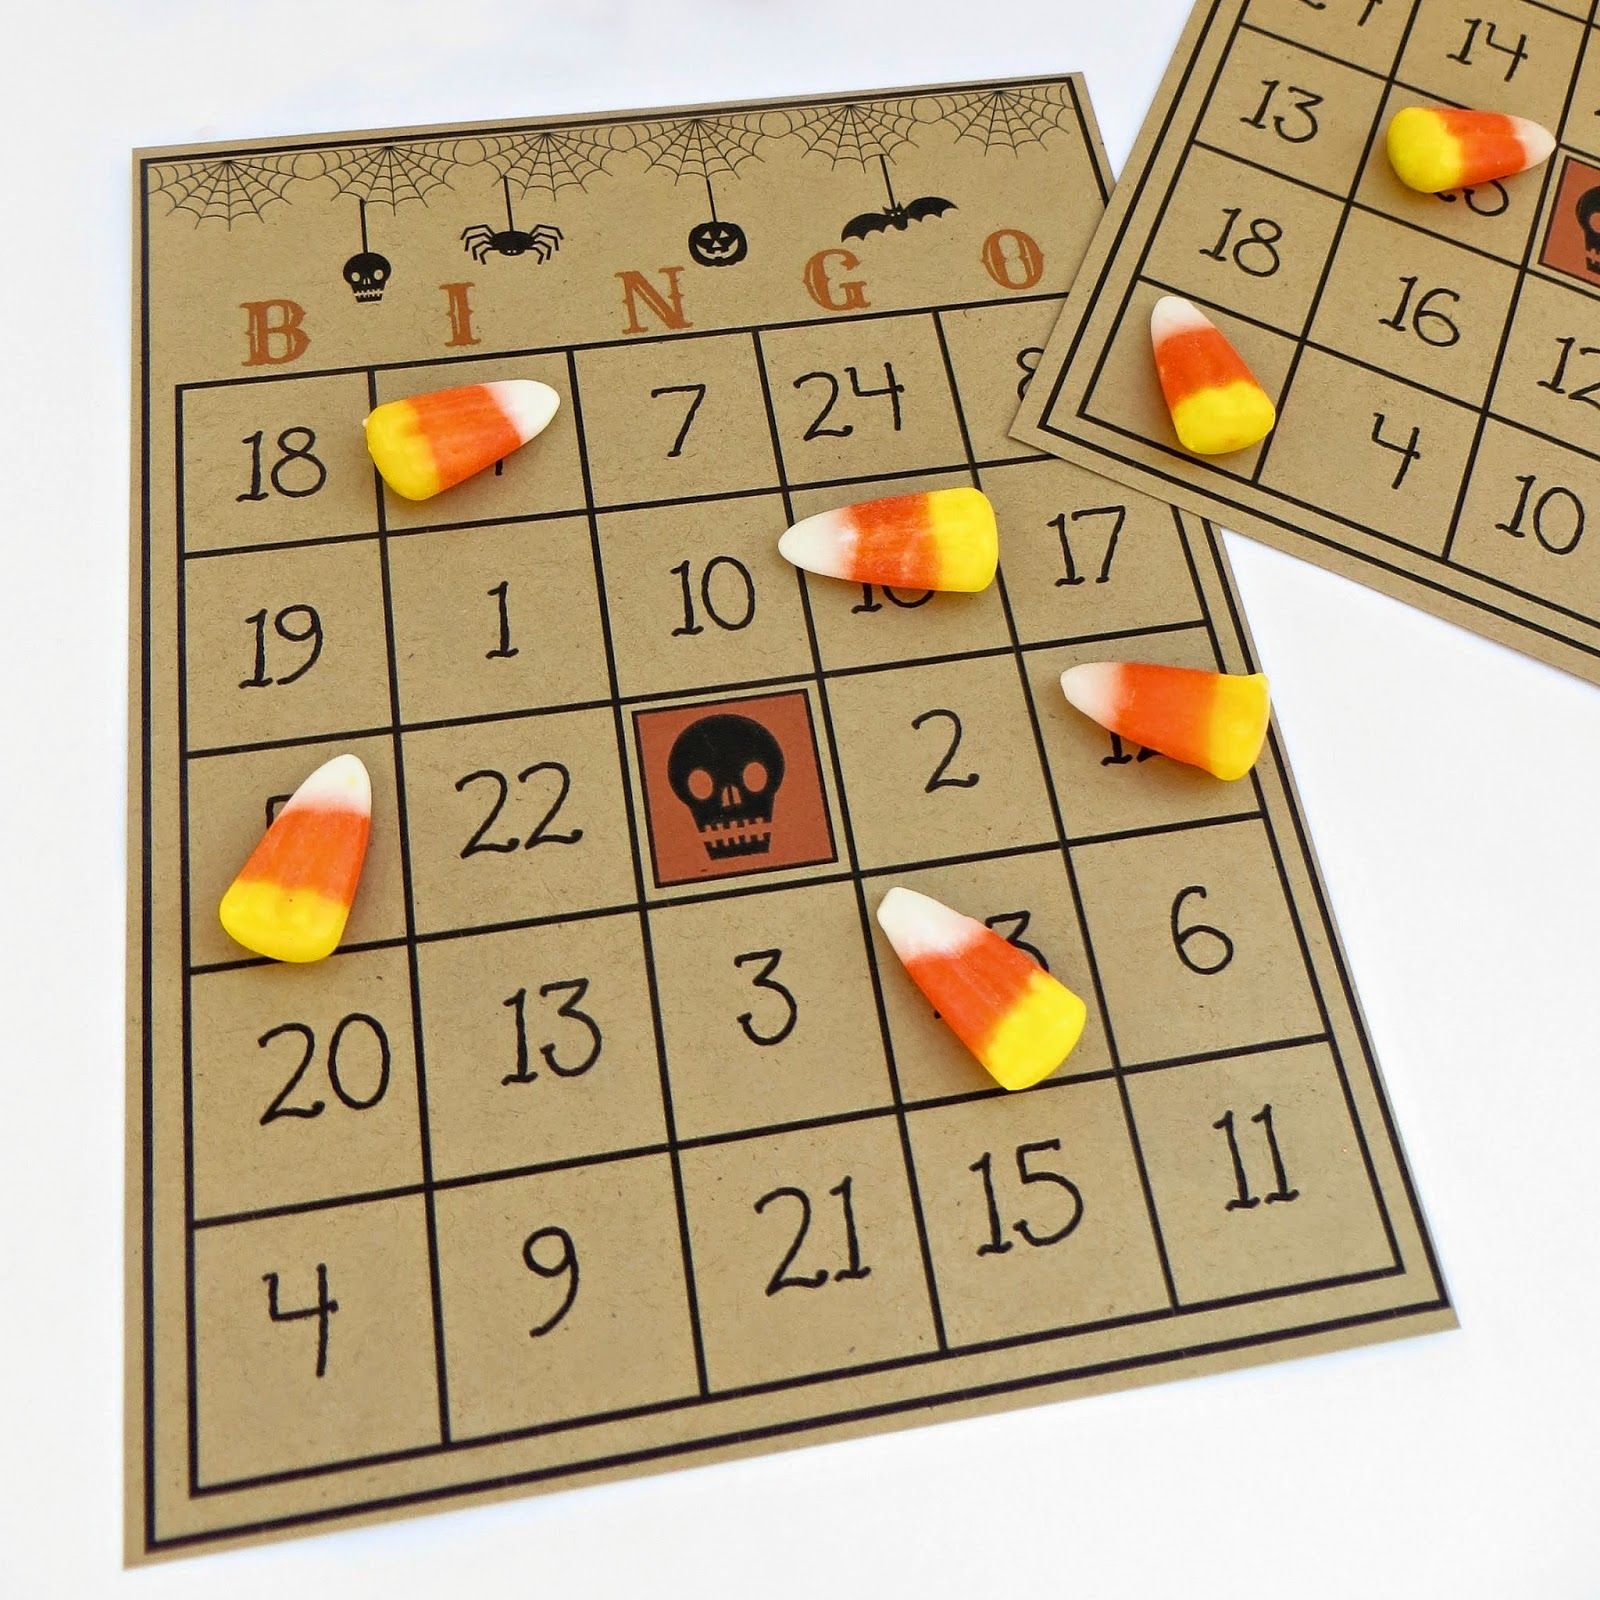 photograph relating to Printable Halloween Bingo Card titled No cost Printable Halloween Bingo Recreation Vacations - Halloween